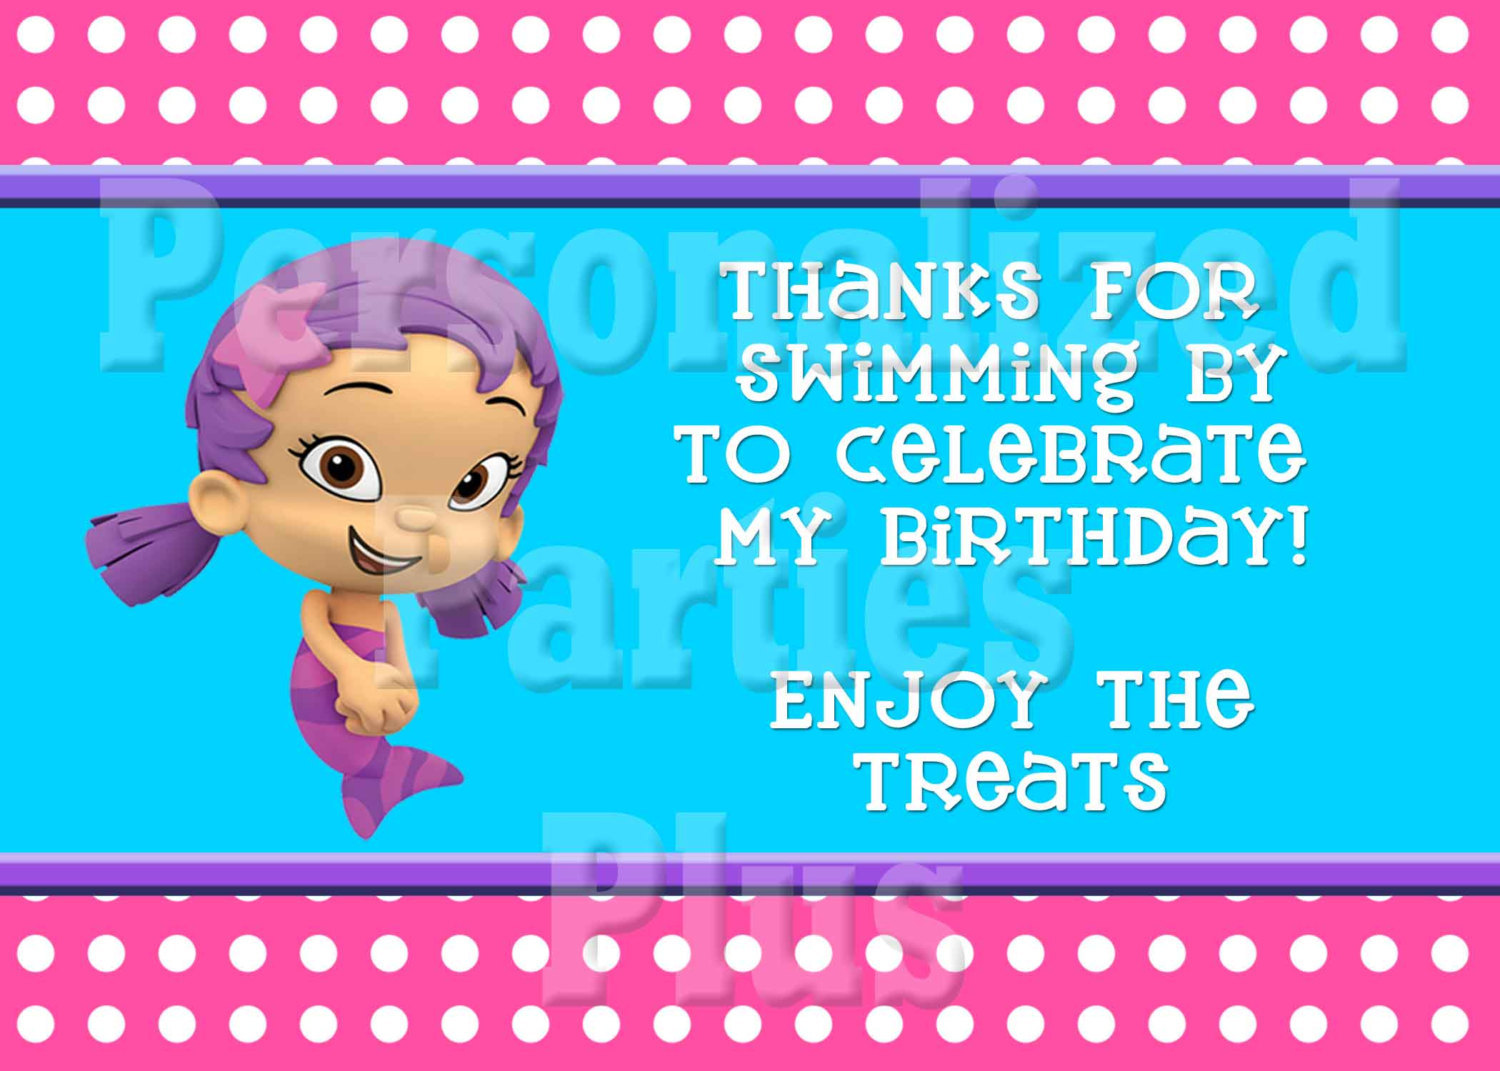 Bubble Guppie party signs | Bubble Guppy signs | birthday signs